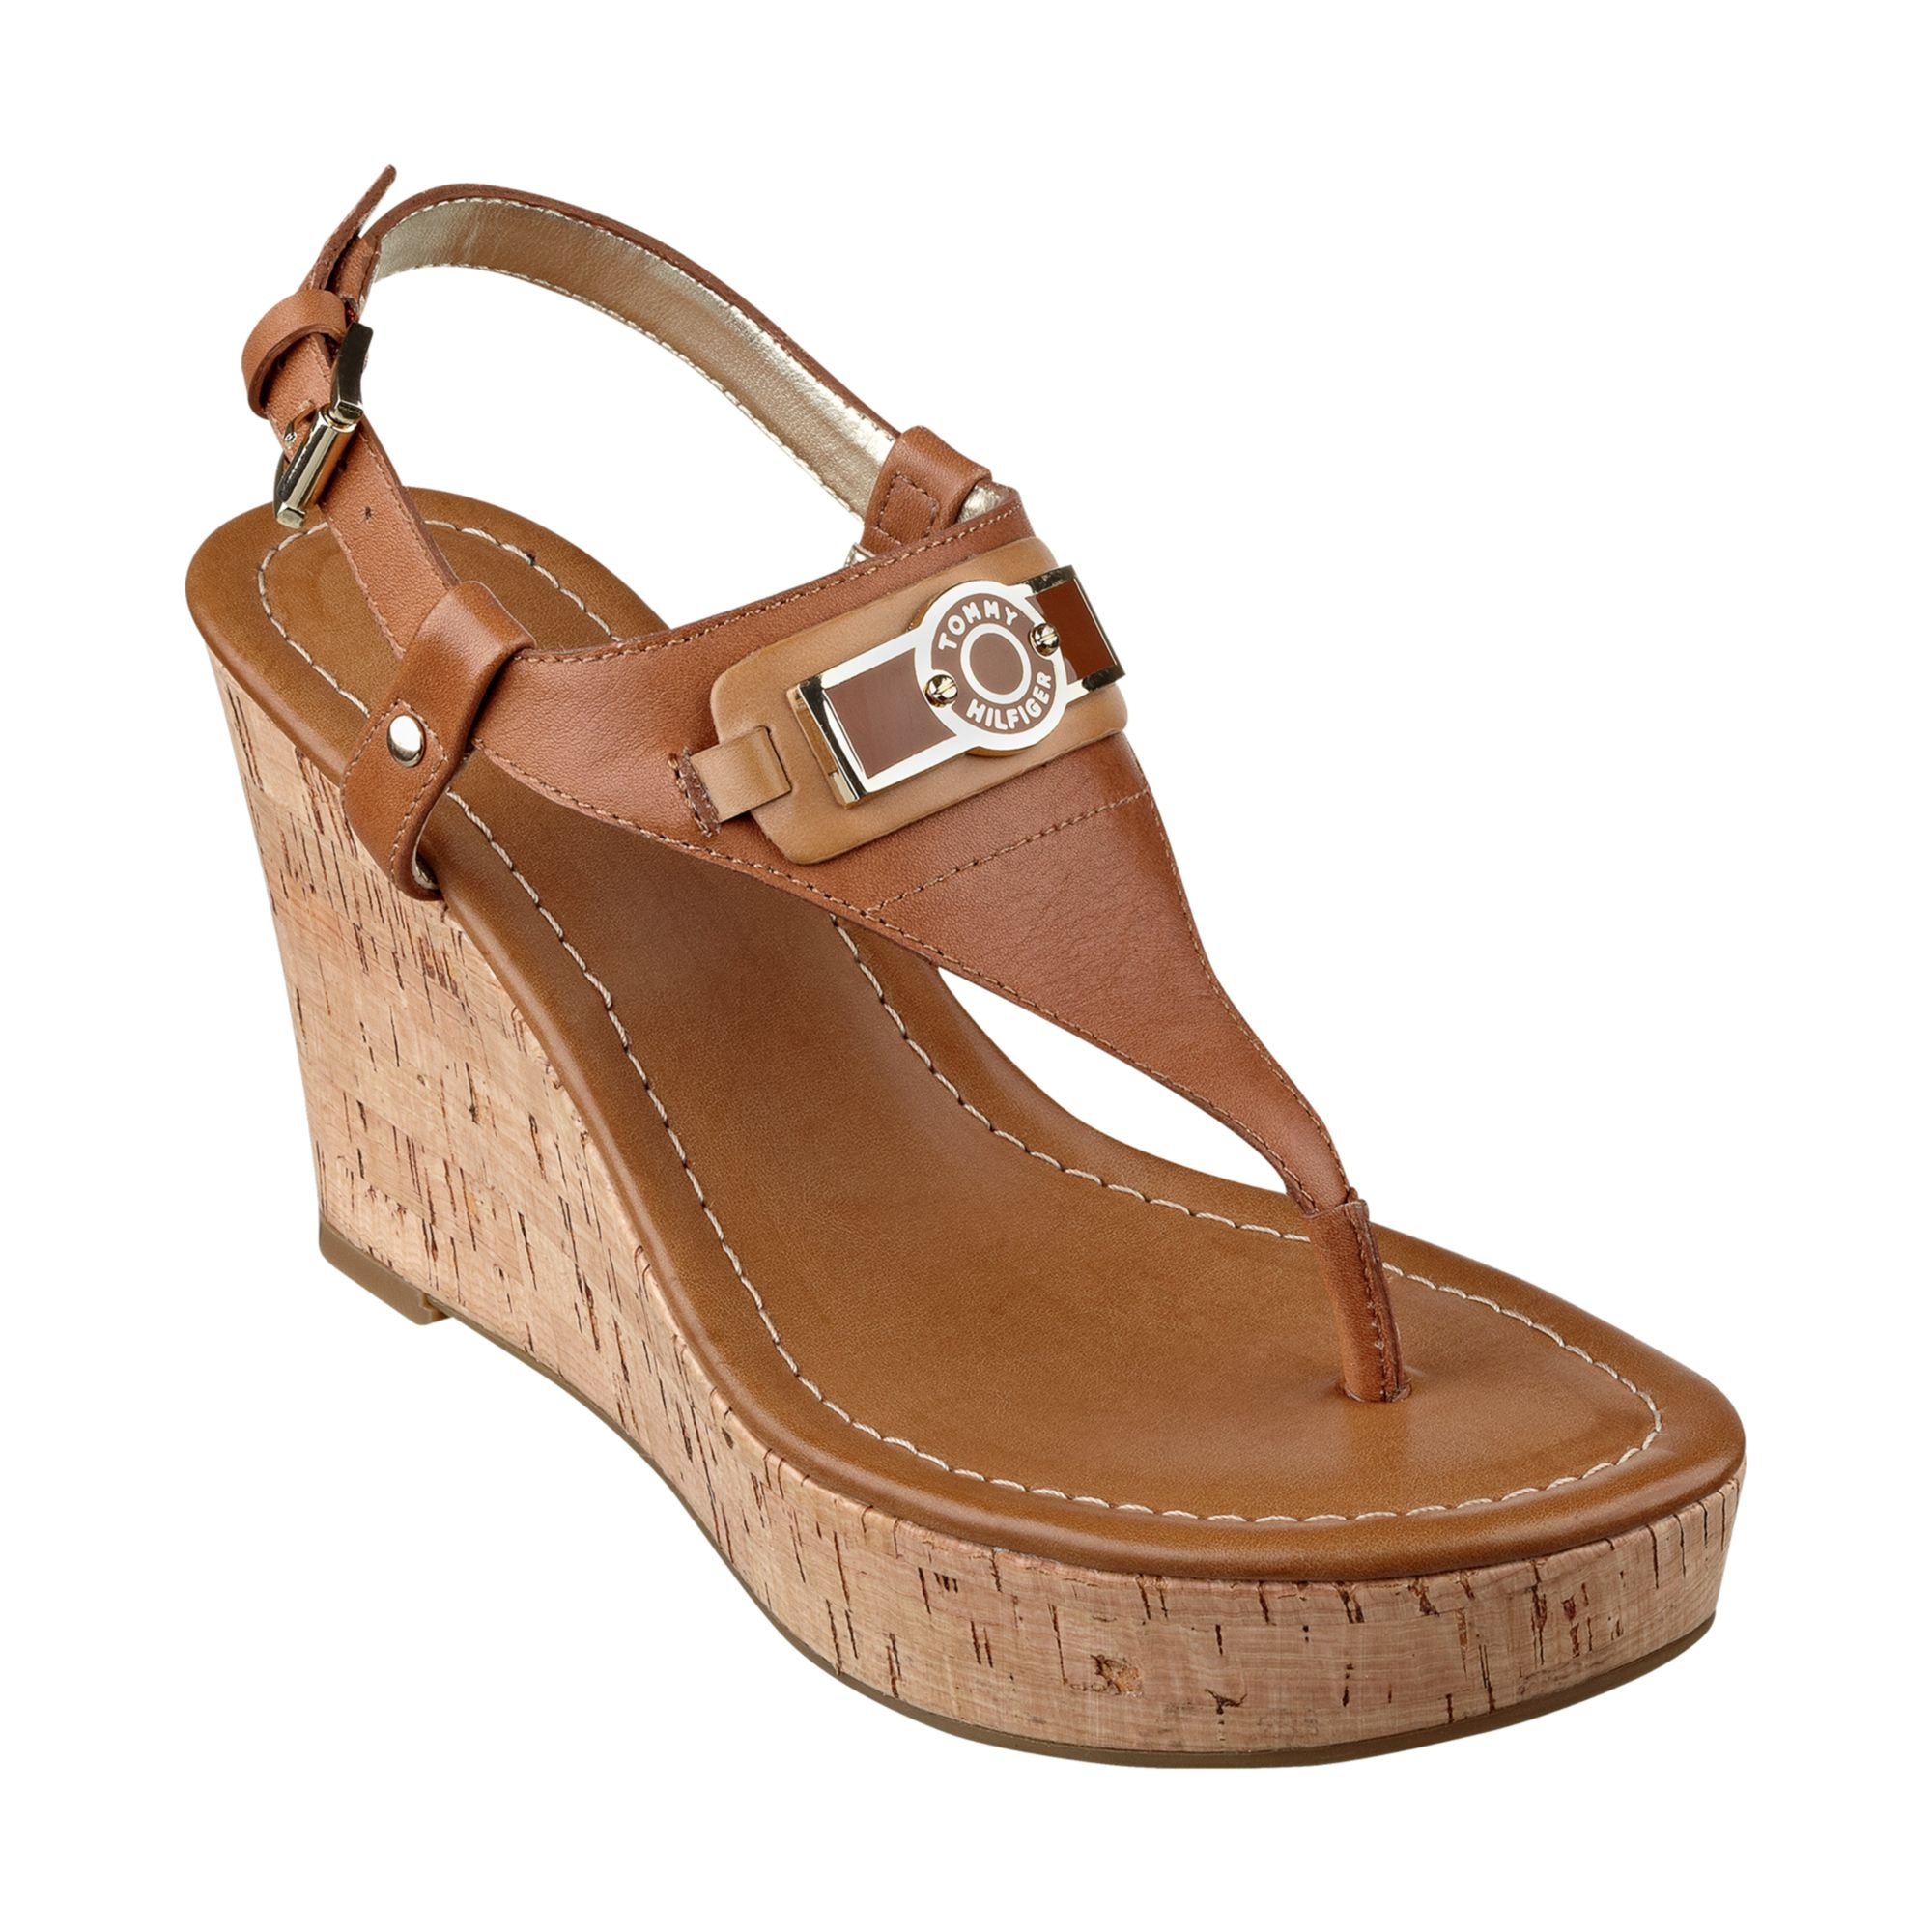 7636dfa90 Lyst - Tommy Hilfiger Womens Monor Platform Wedge Thong Sandals in Brown